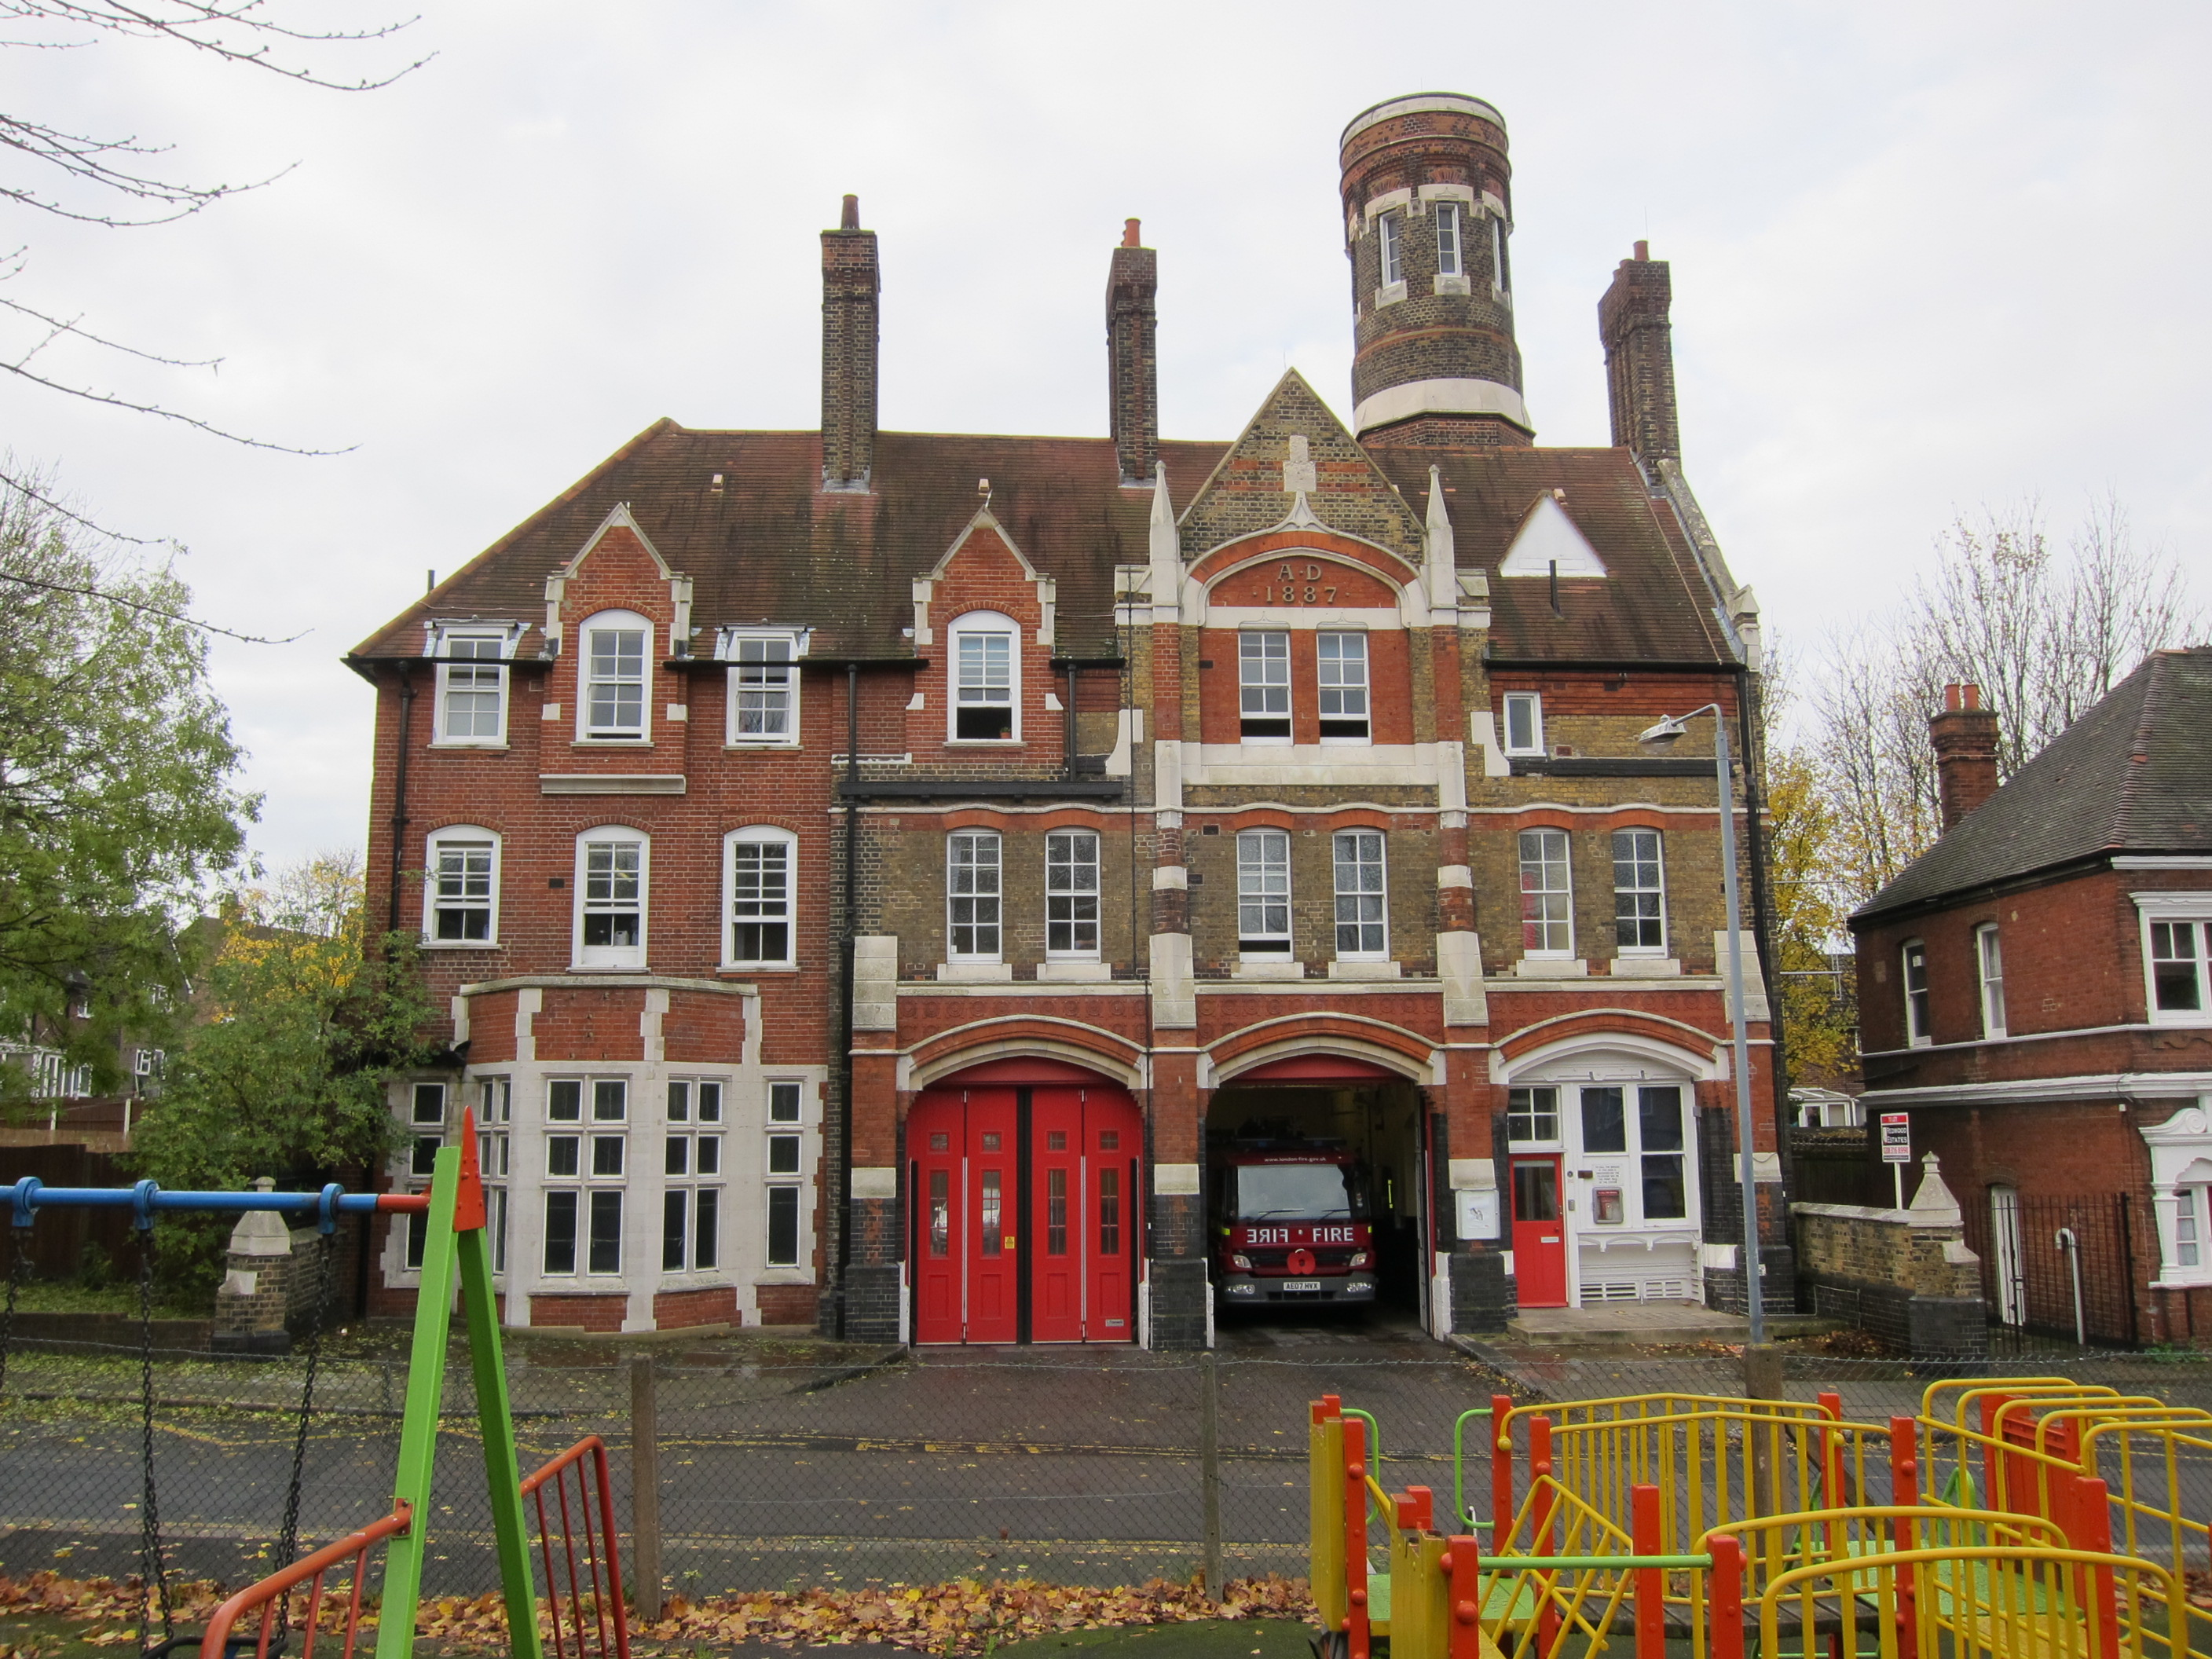 London's Oldest Operational Fire Station – a spark in your veins